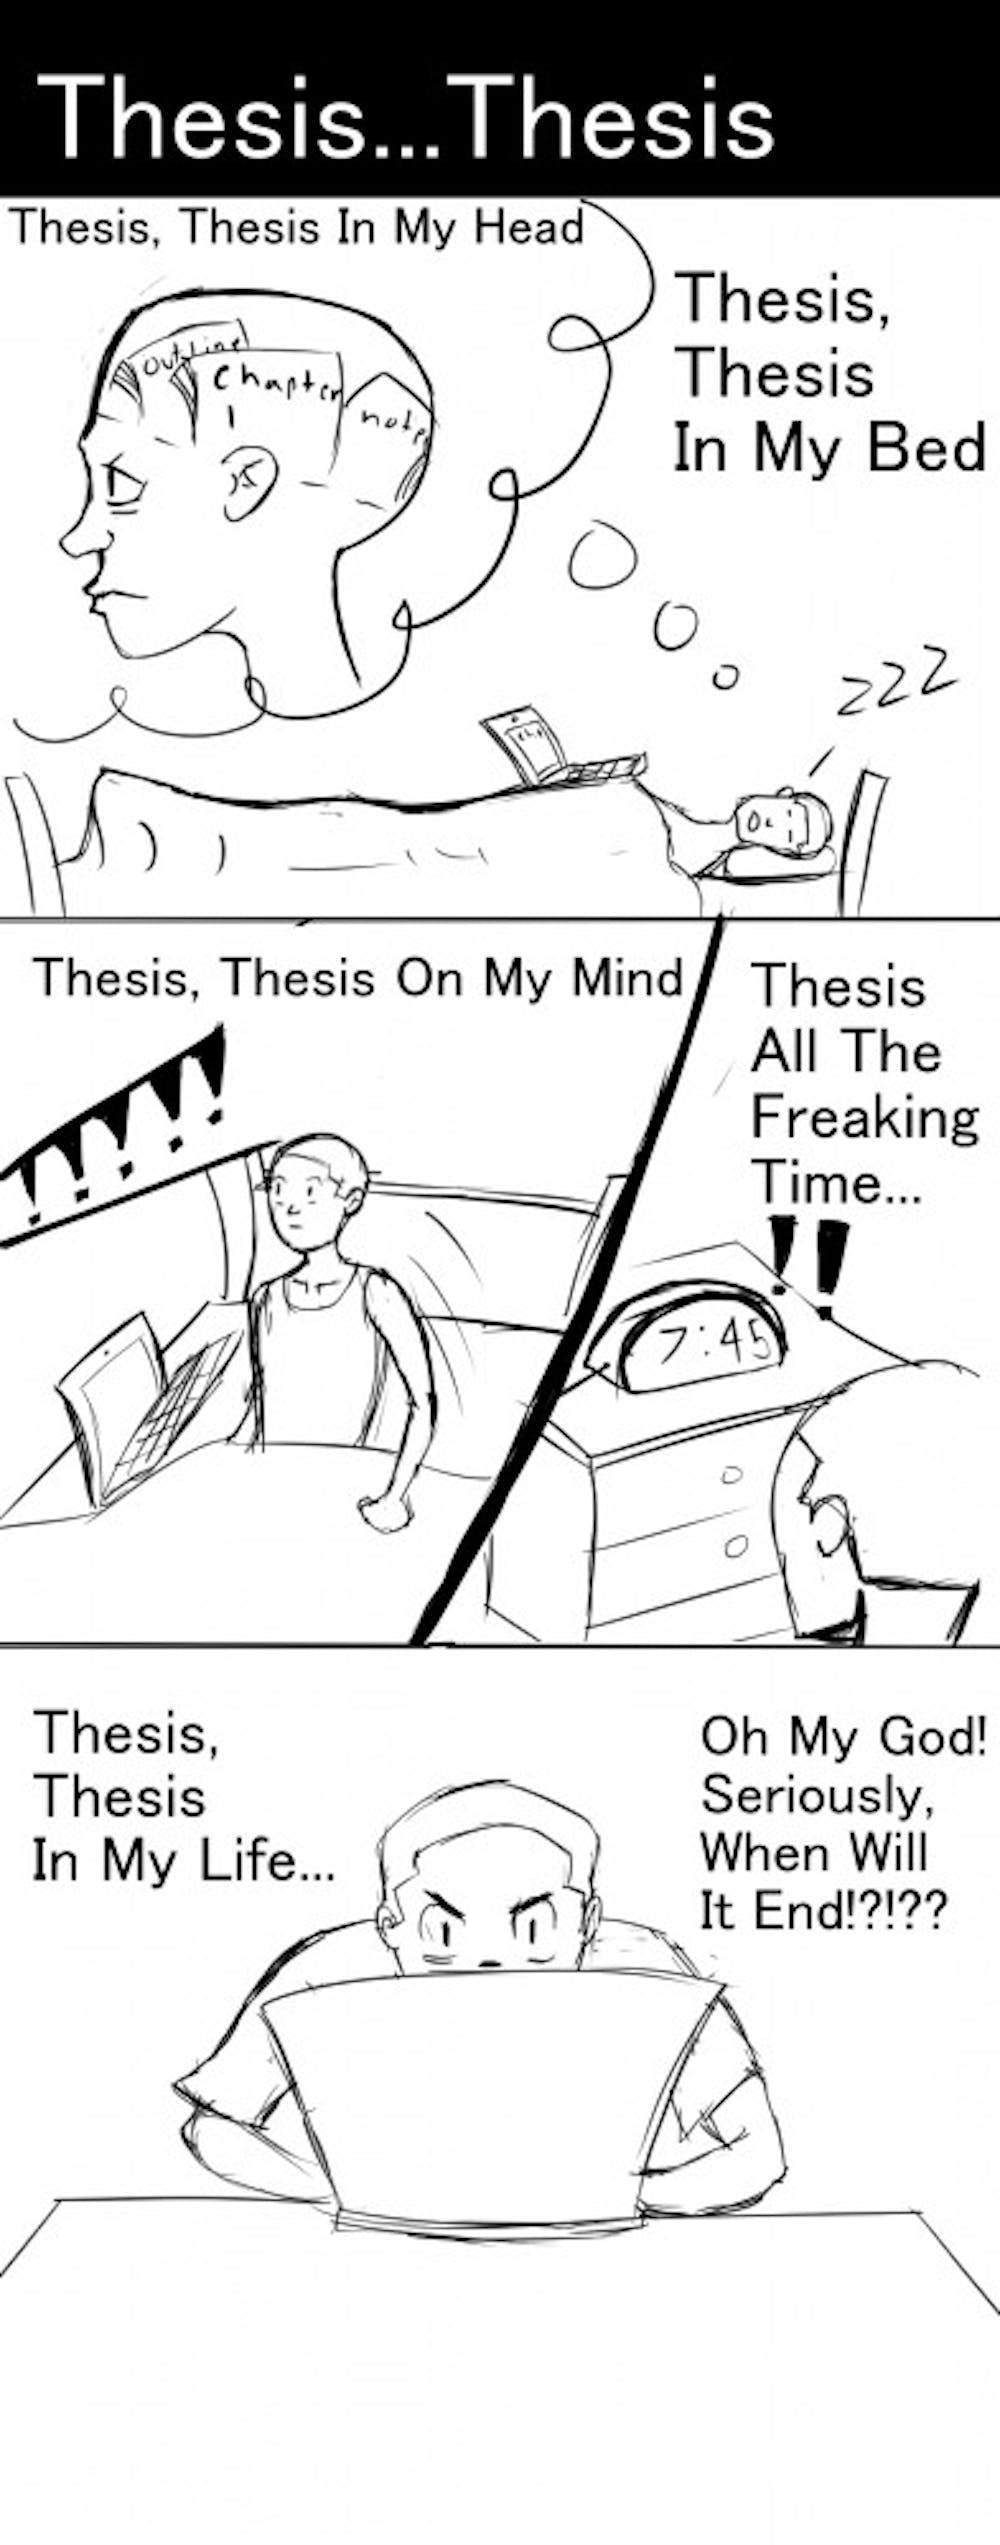 thesis-thesis